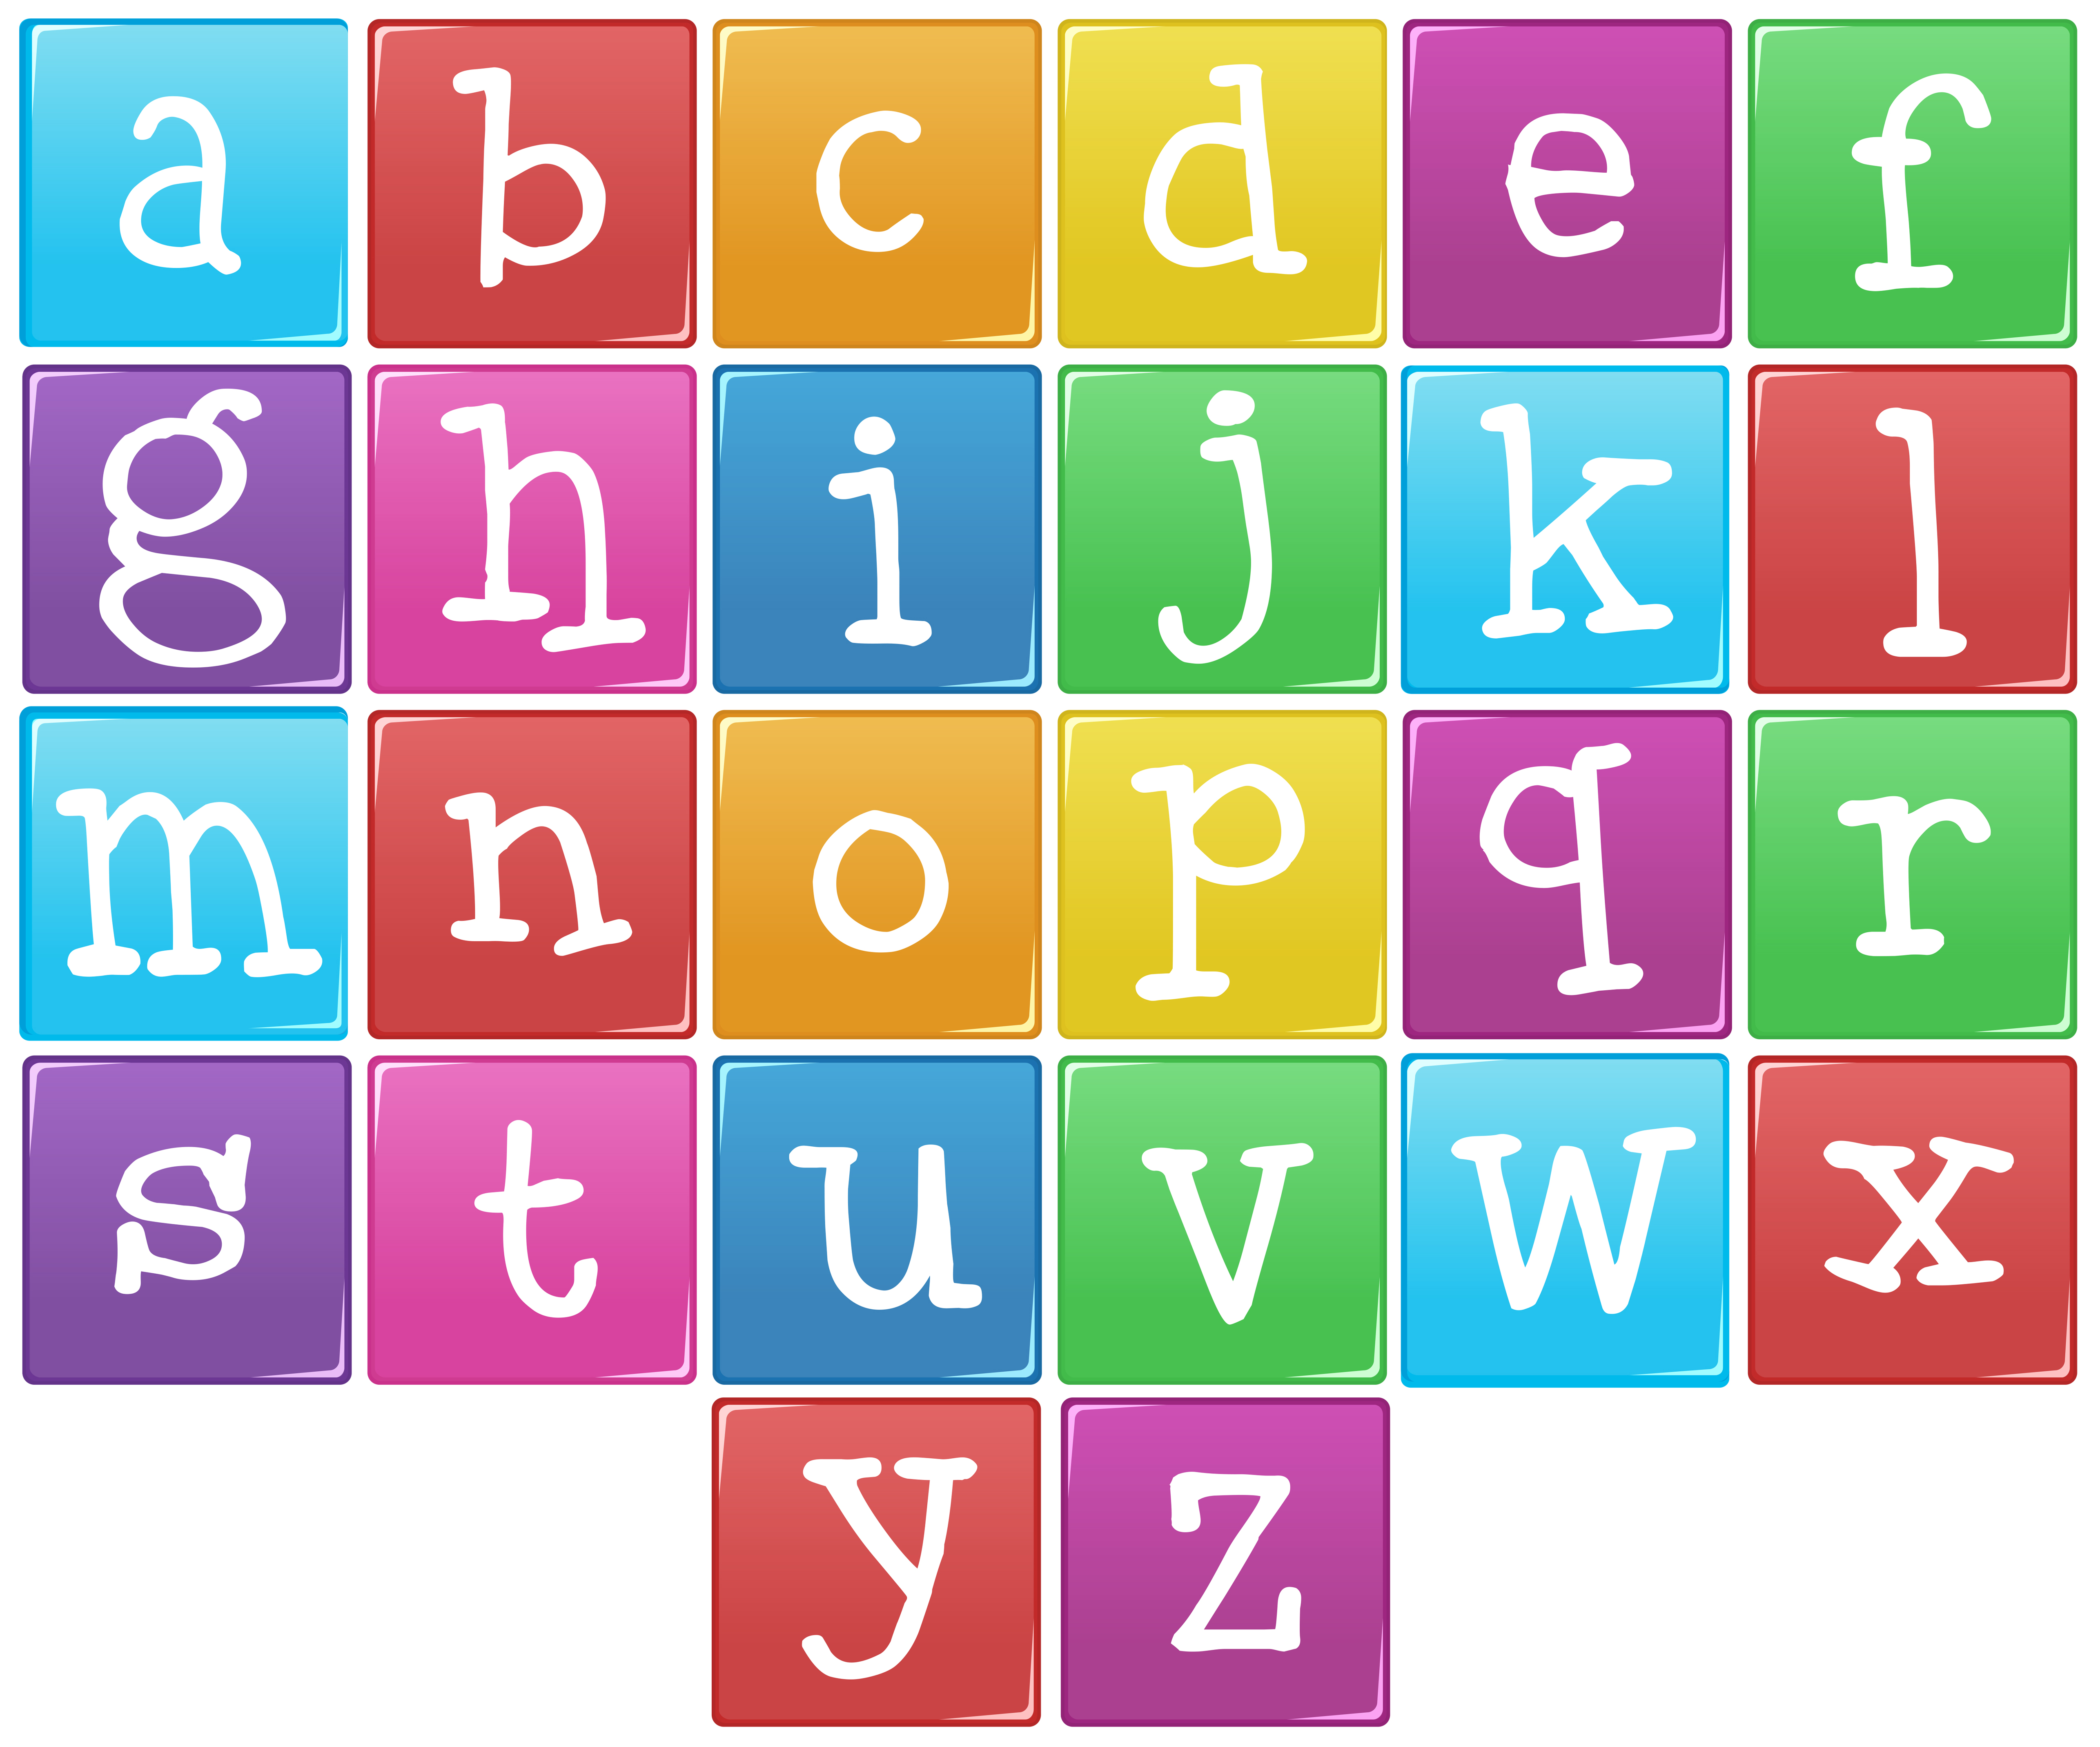 English Alphabet From A To Z Download Free Vectors Clipart